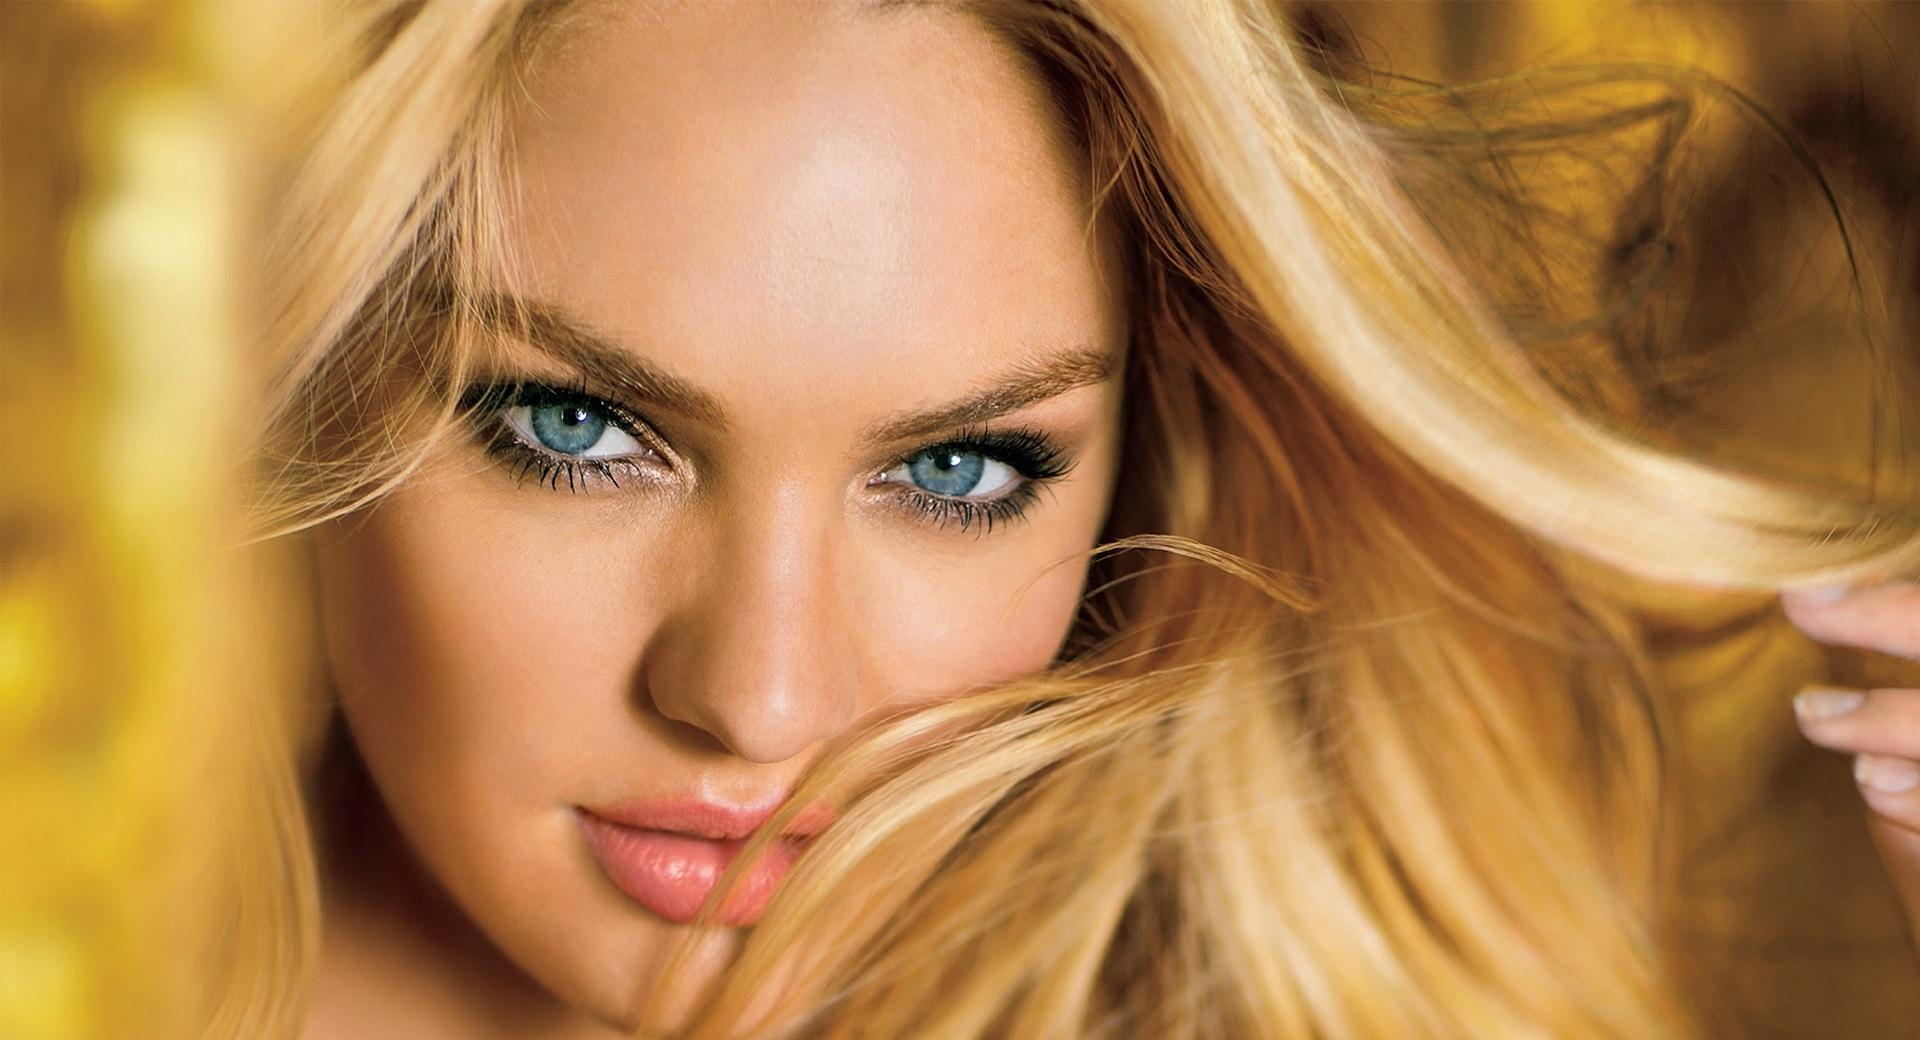 Candice Swanepoel 2013 wallpapers HD quality